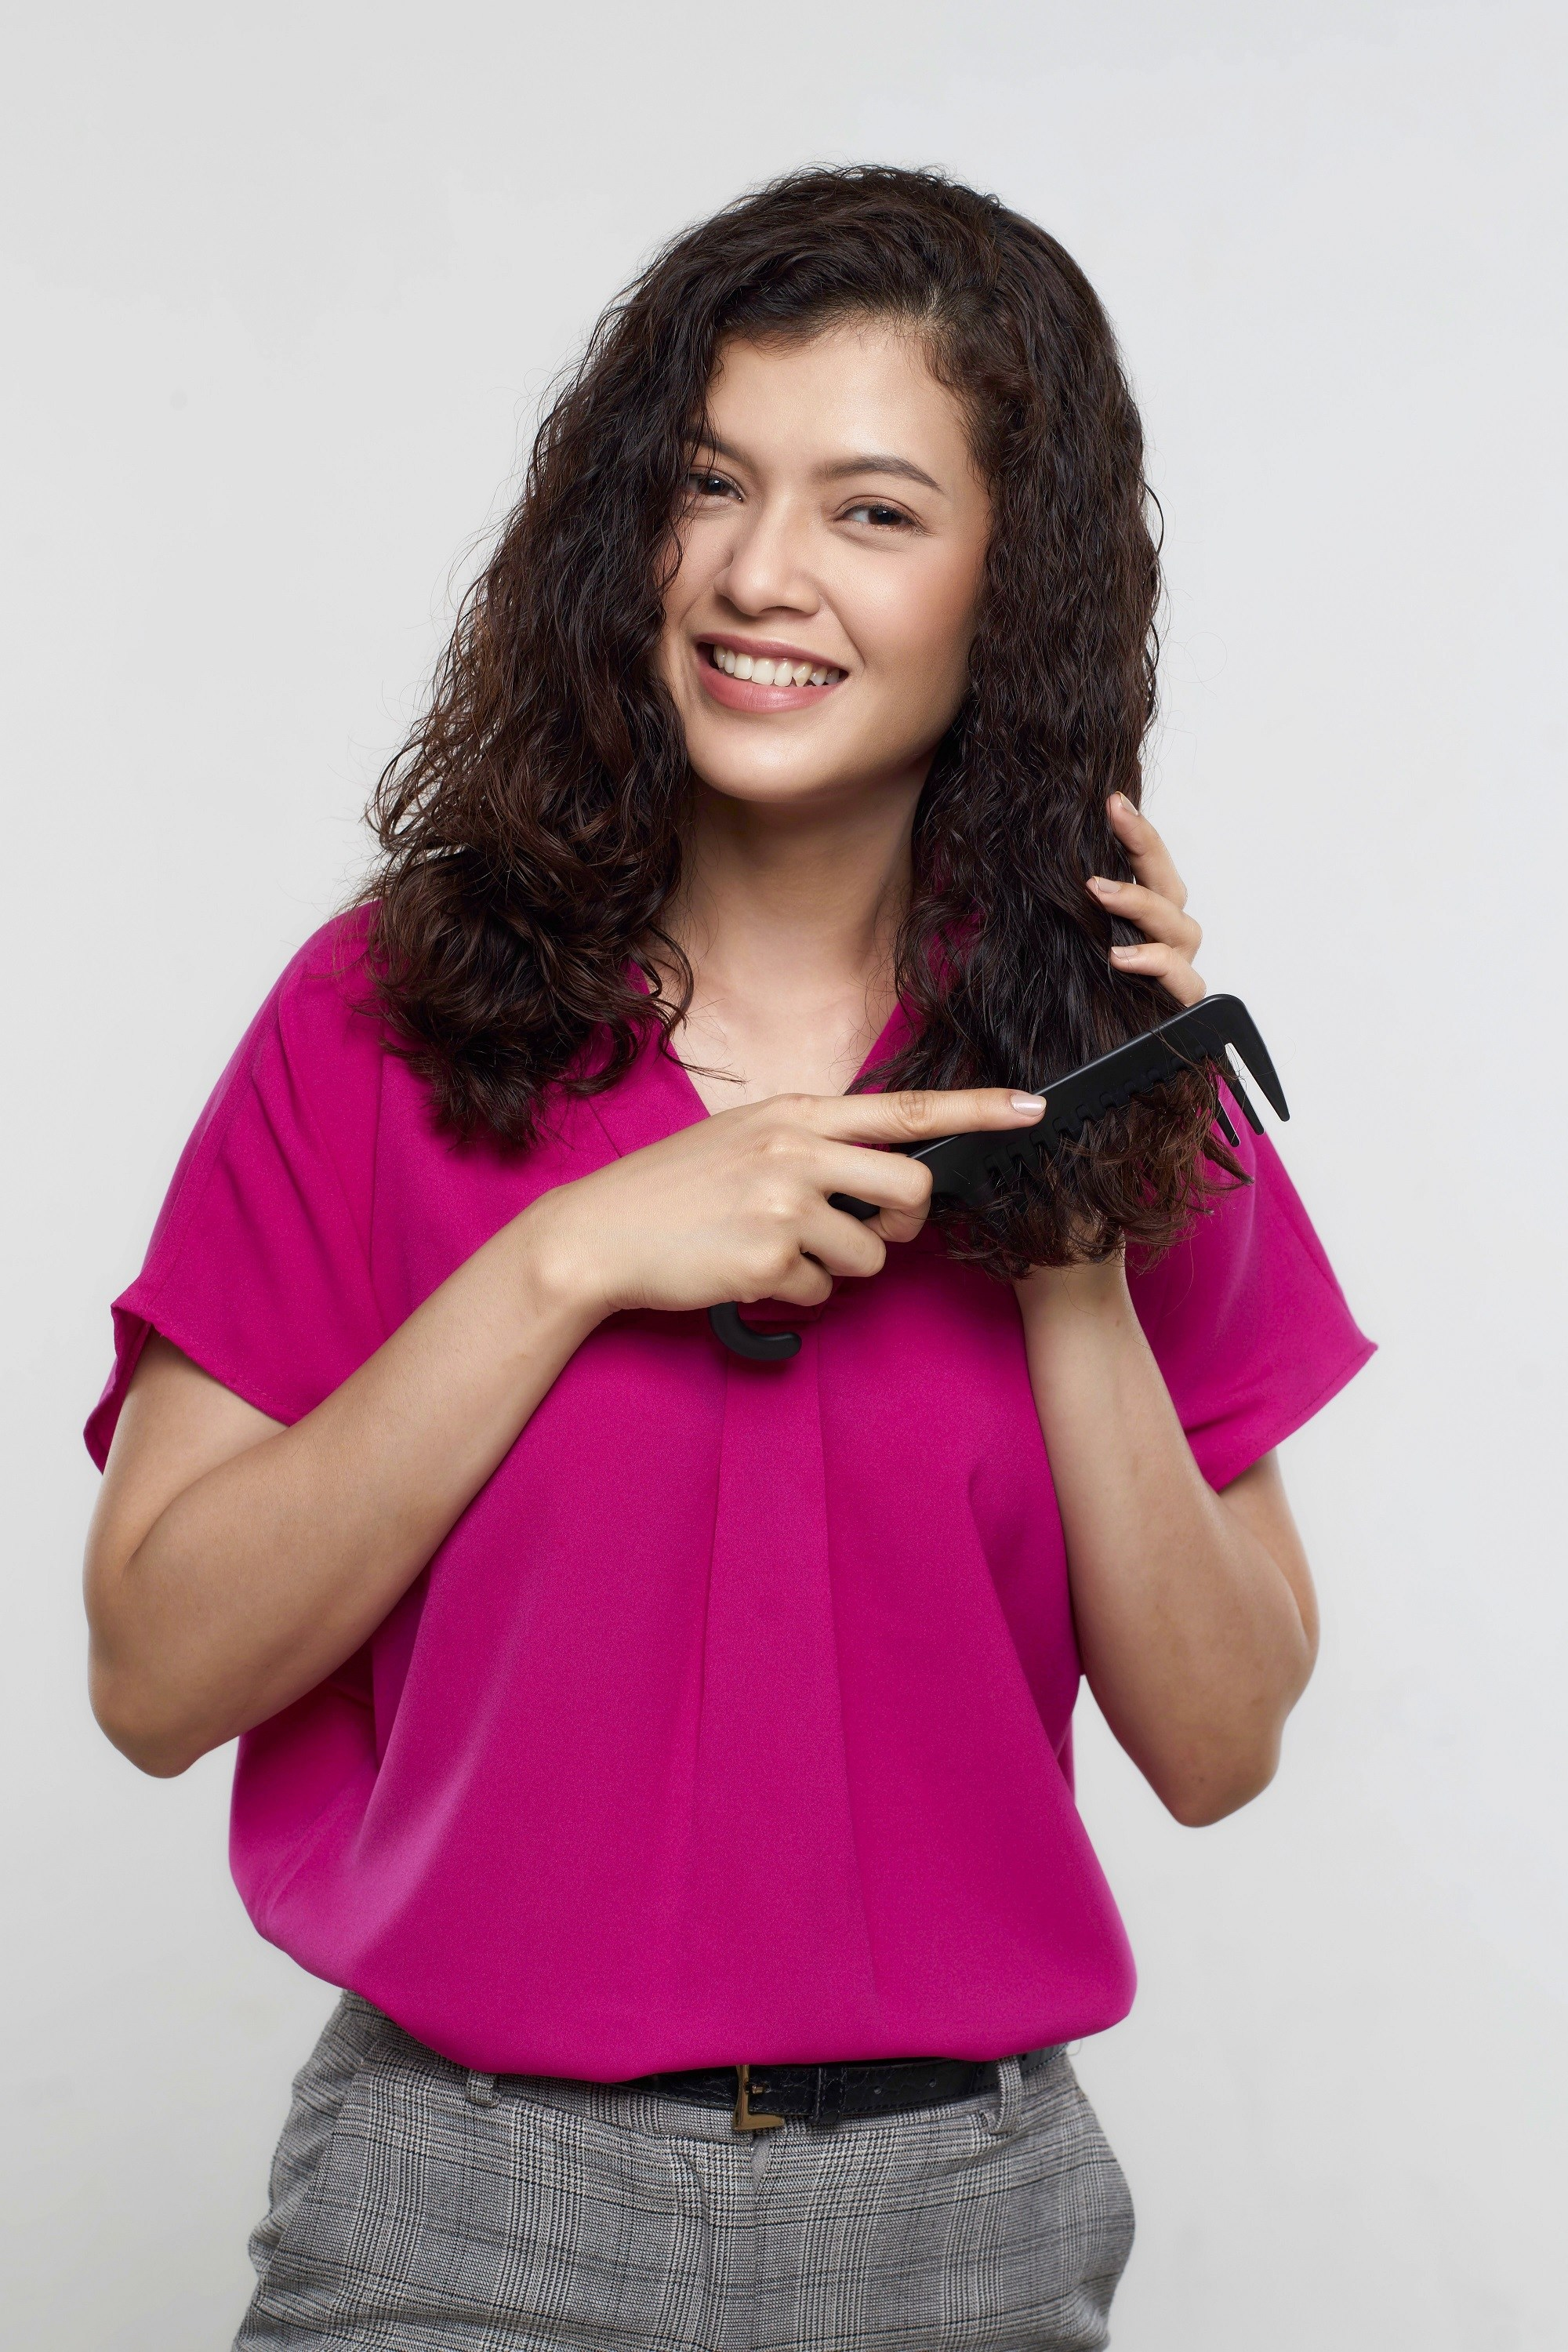 How to use leave-in conditioner: Asian woman combing her shoulder-length dark curly hair and wearing a pink blouse